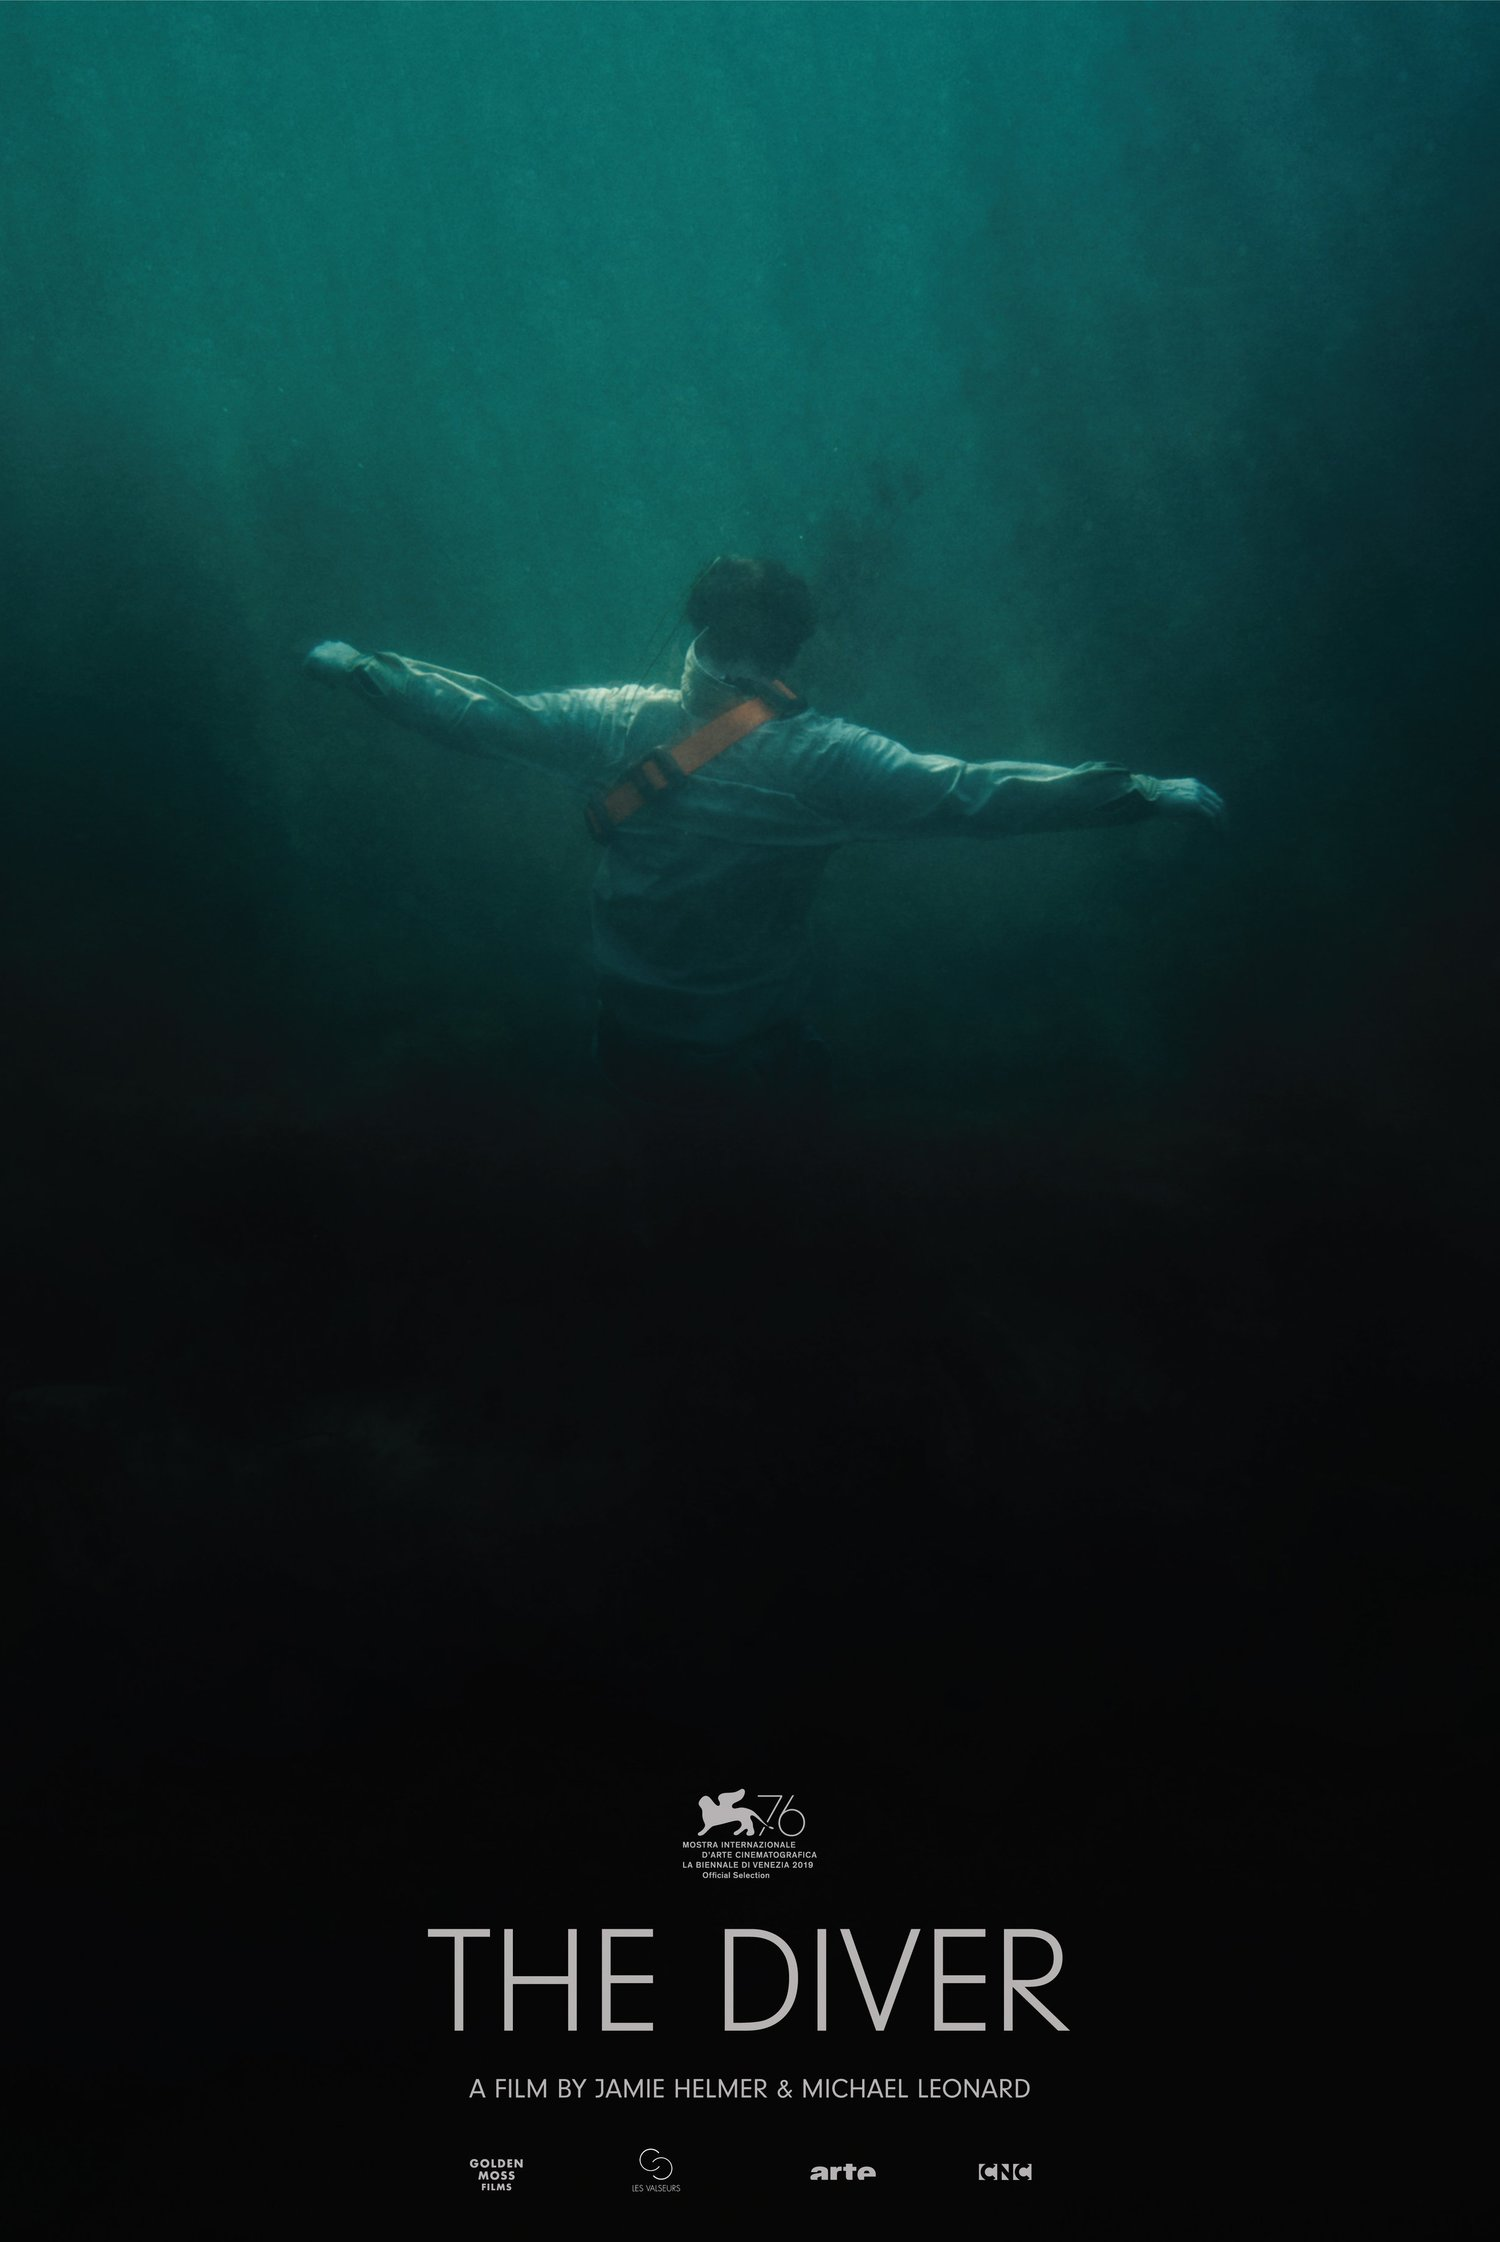 The Diver film poster